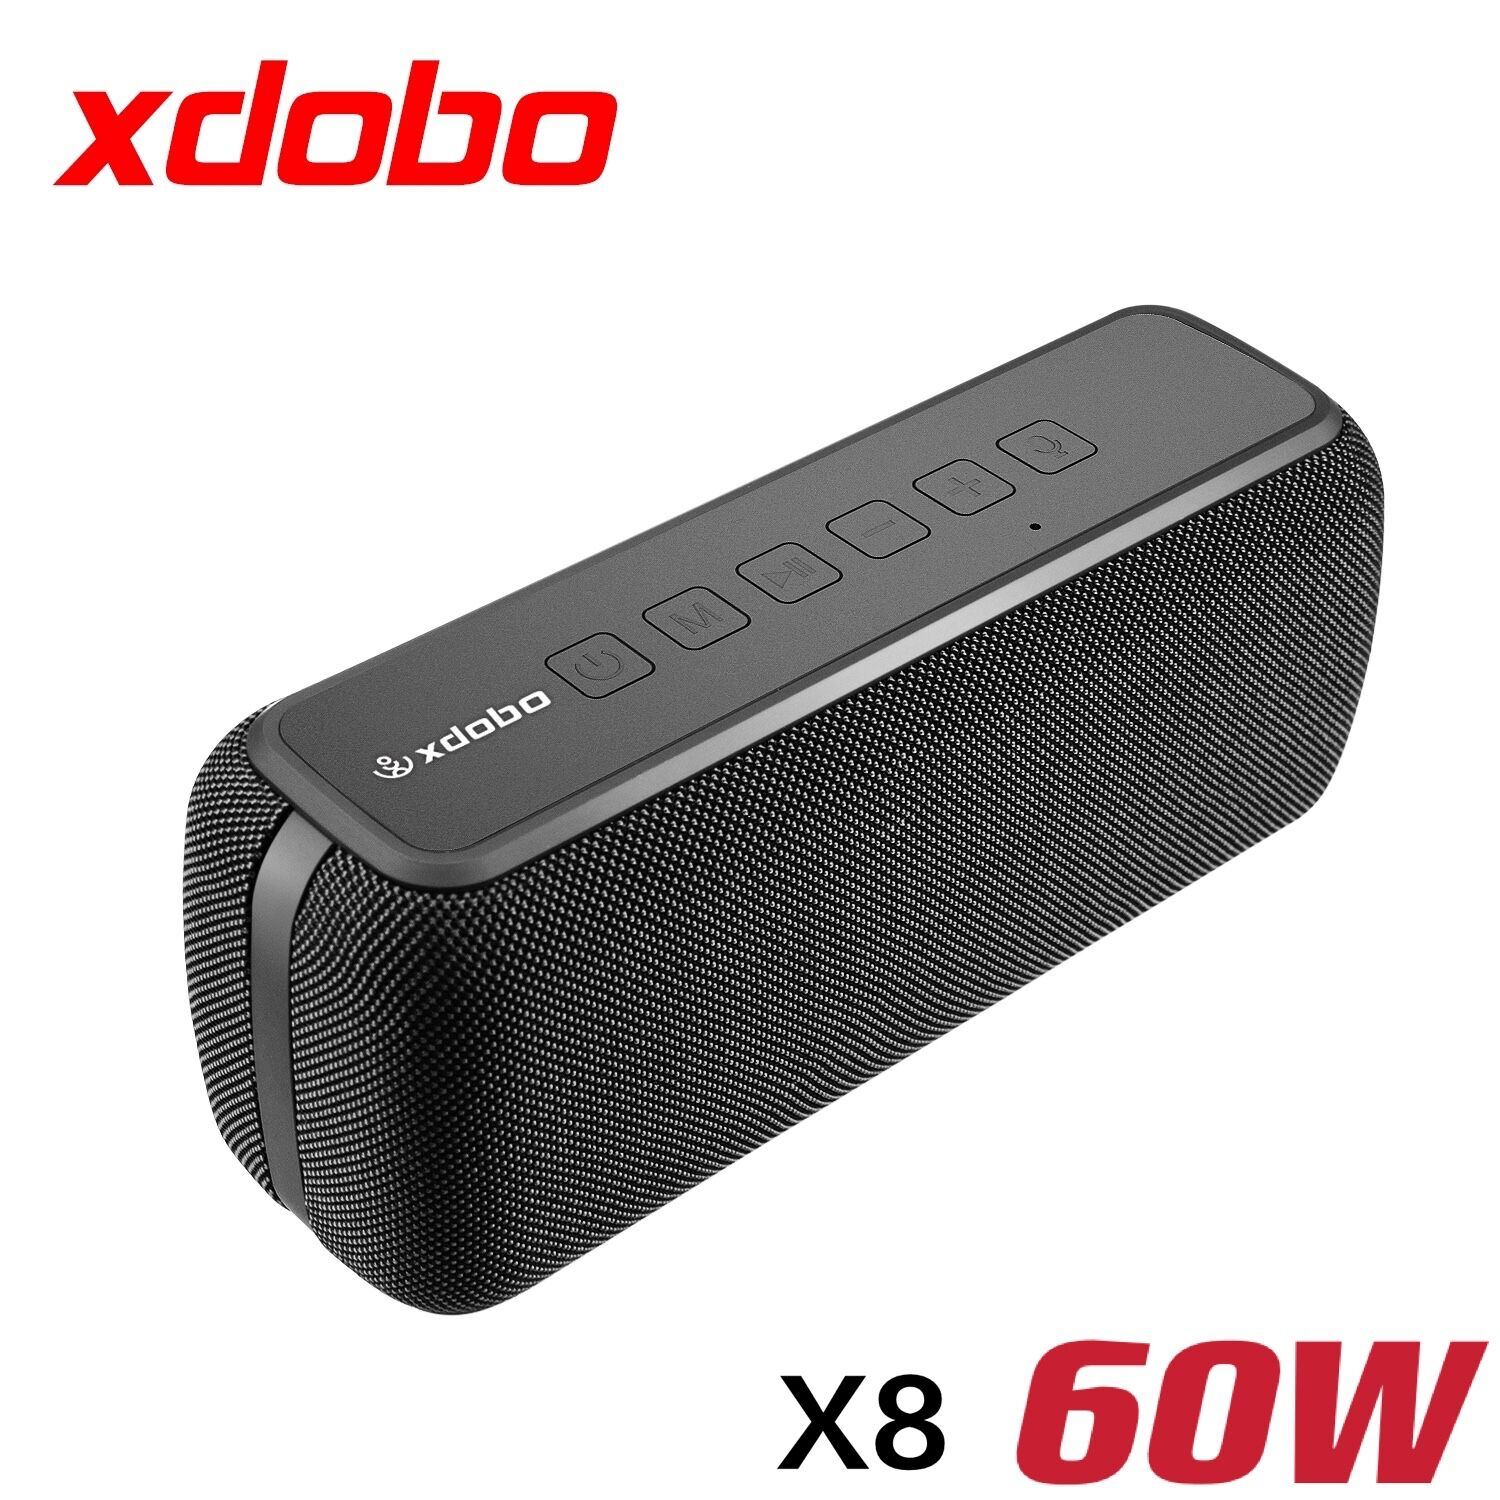 Promo XDOBO X8 60W  bluetooth speakers Portable subwoofer wireless IPX5 Waterproof TWS 15H playing Voice Assistant Extra bass system